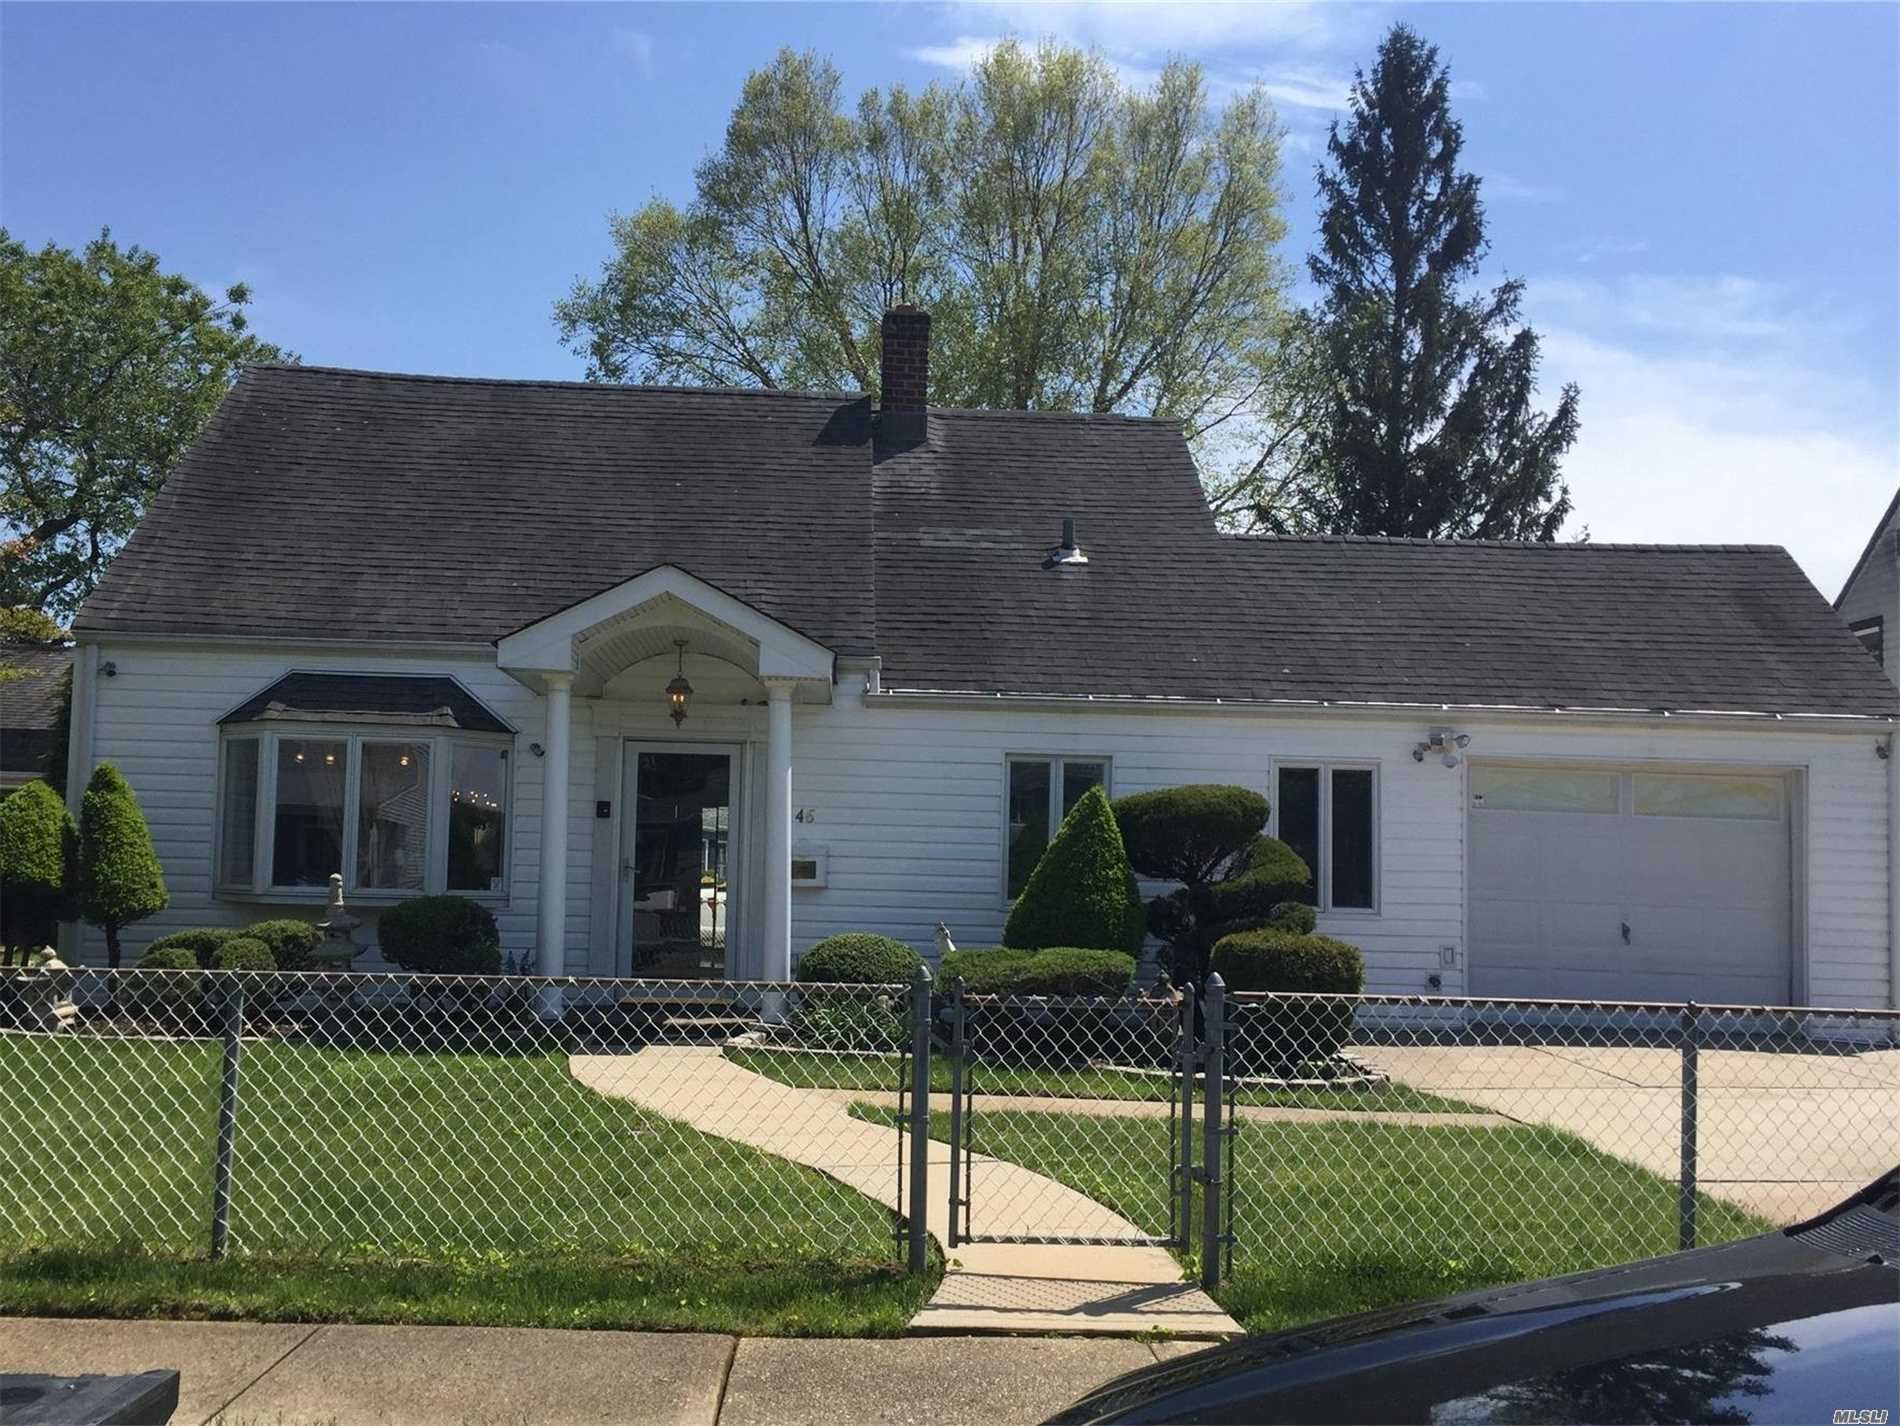 46 Cliff Ln, Levittown, NY 11756 - MLS#: 3215691